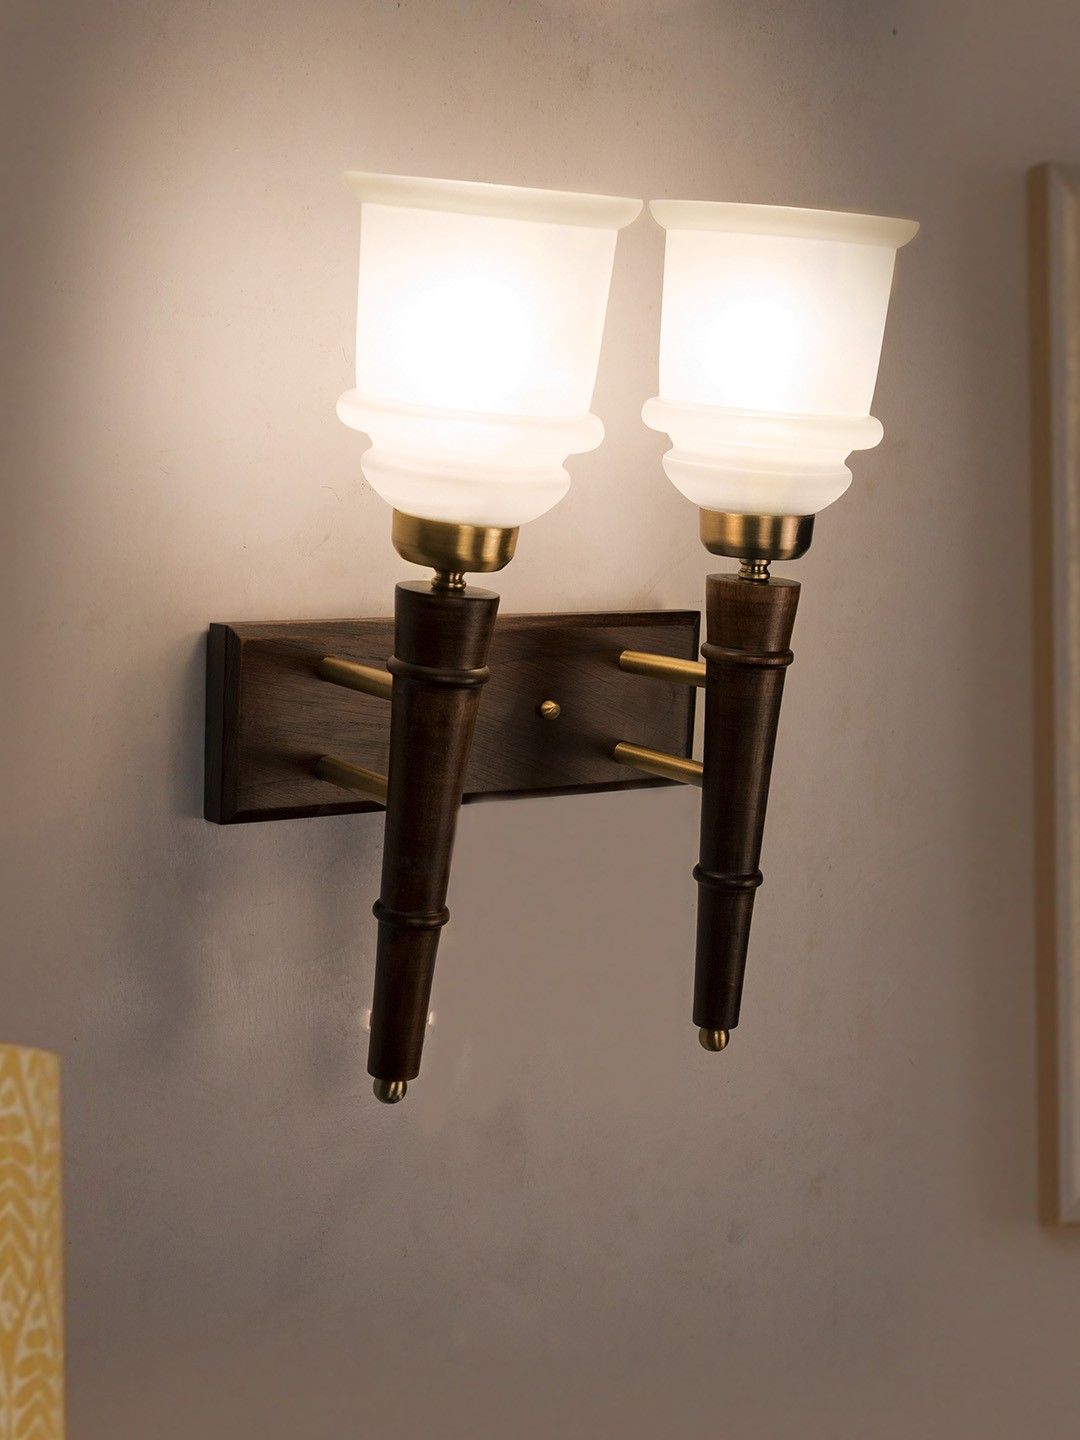 Wooden Torchiere 2 Light Wall Sconce